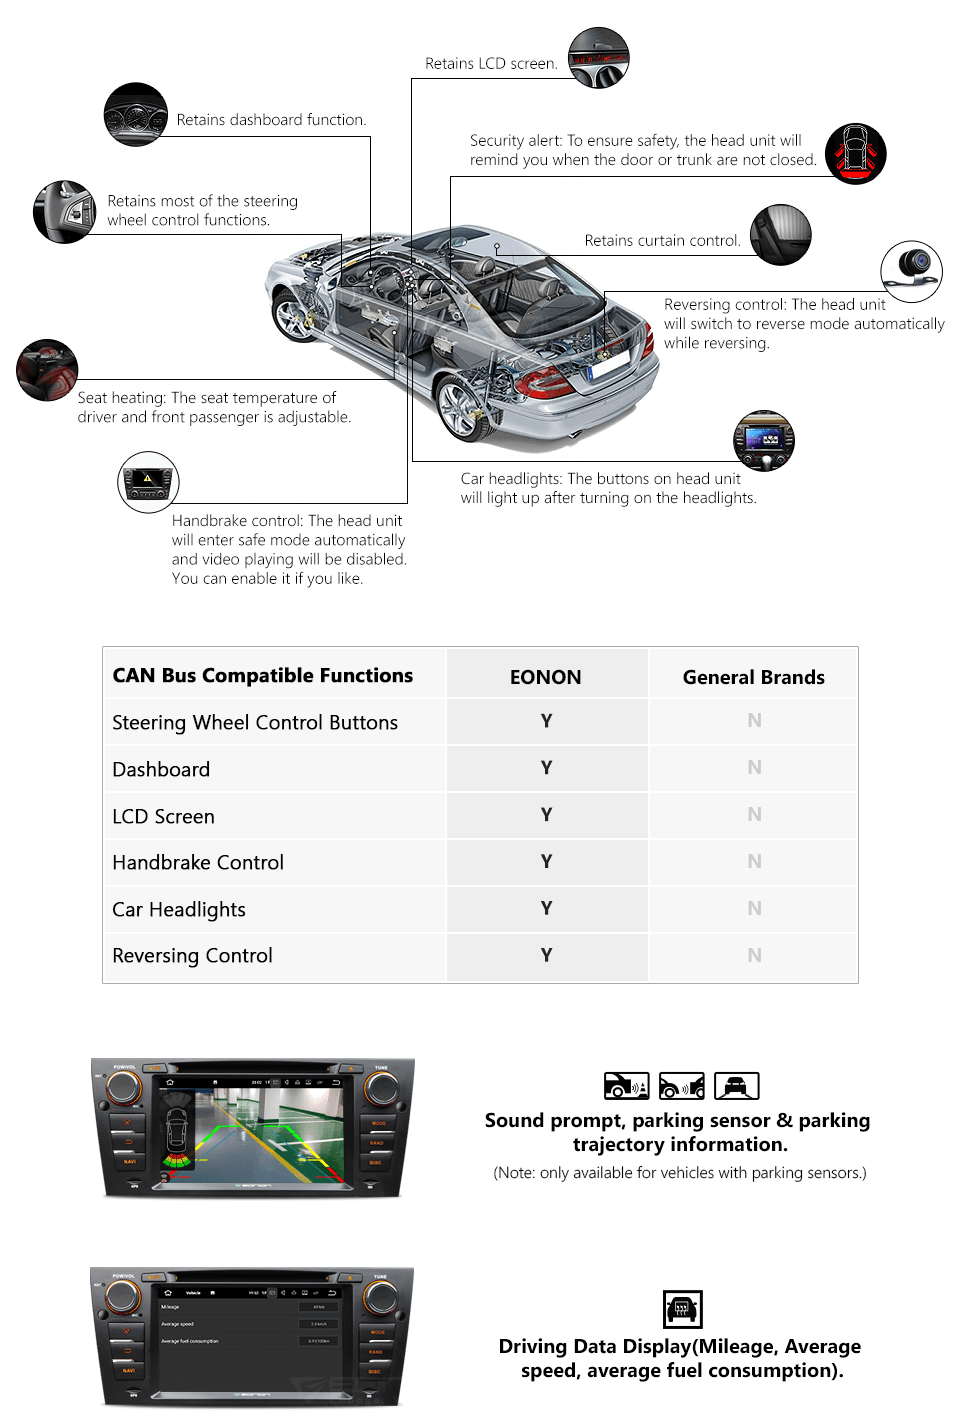 Dual can bus system keeps original car function as shown below after installing the new head unit